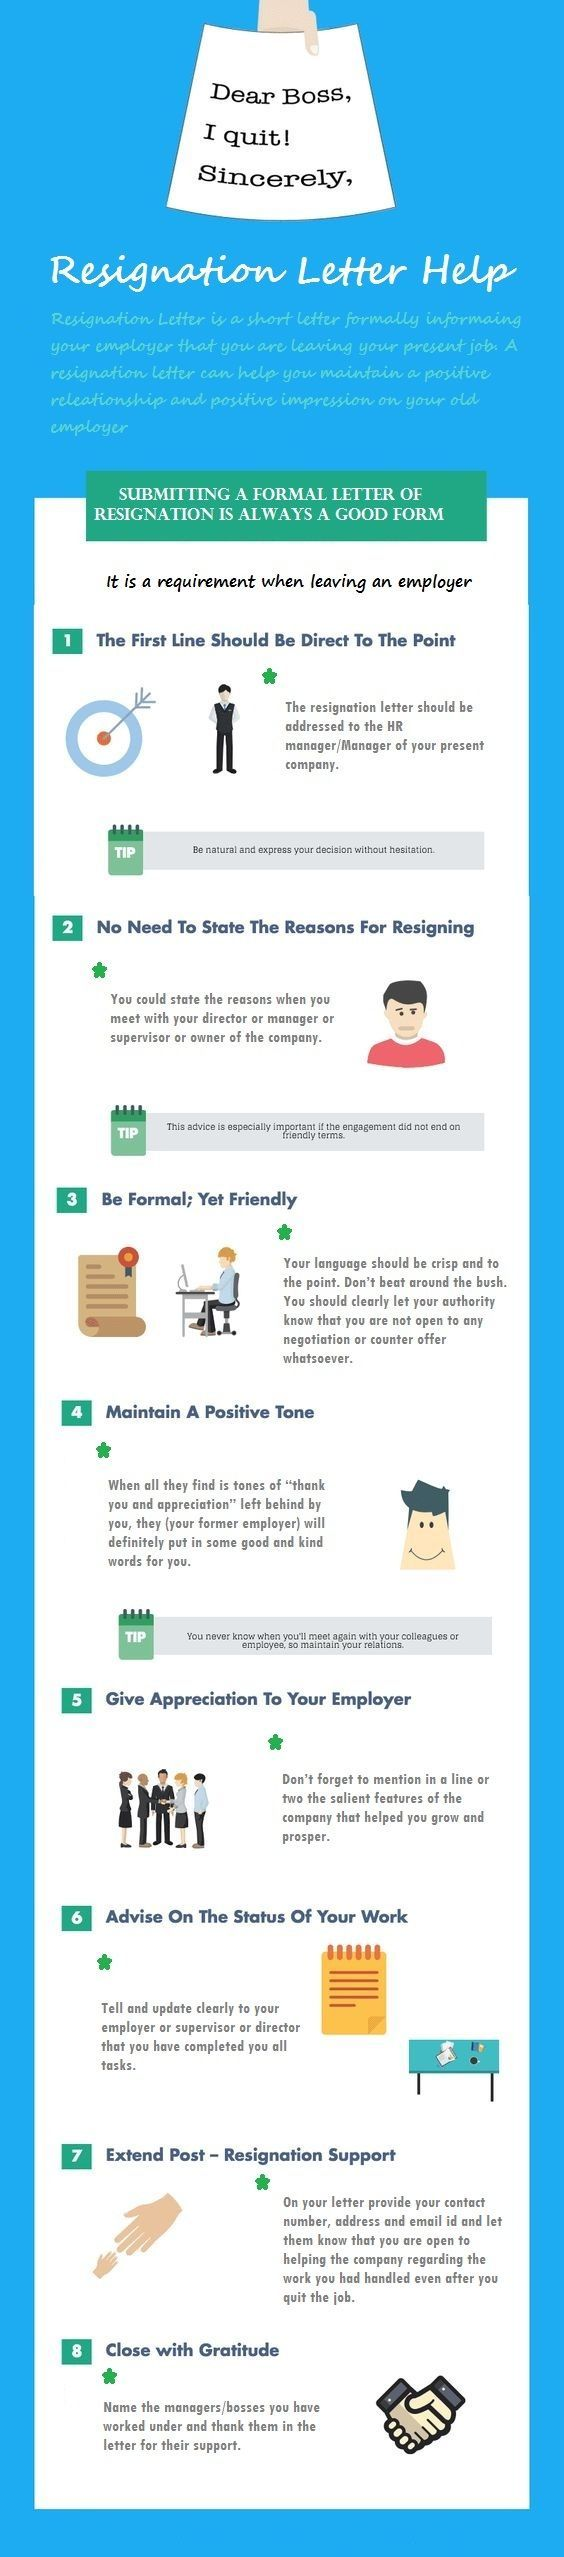 best resignation letter format ideas only pinterest all help you will find here the details how write letterletter templates